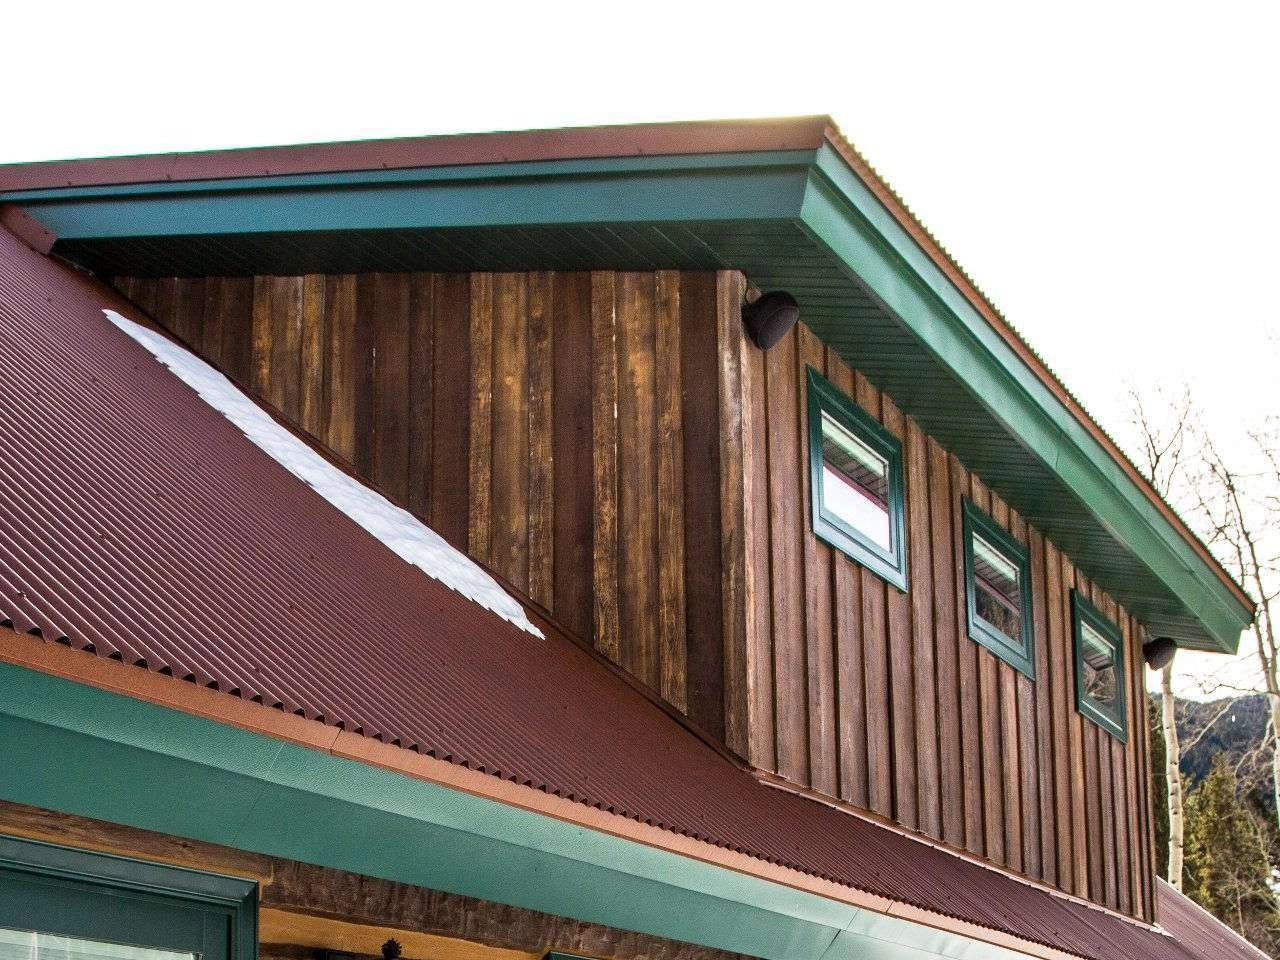 Horizontal Board And Batten Siding Introducting Everlog Board And Batten Concrete Siding